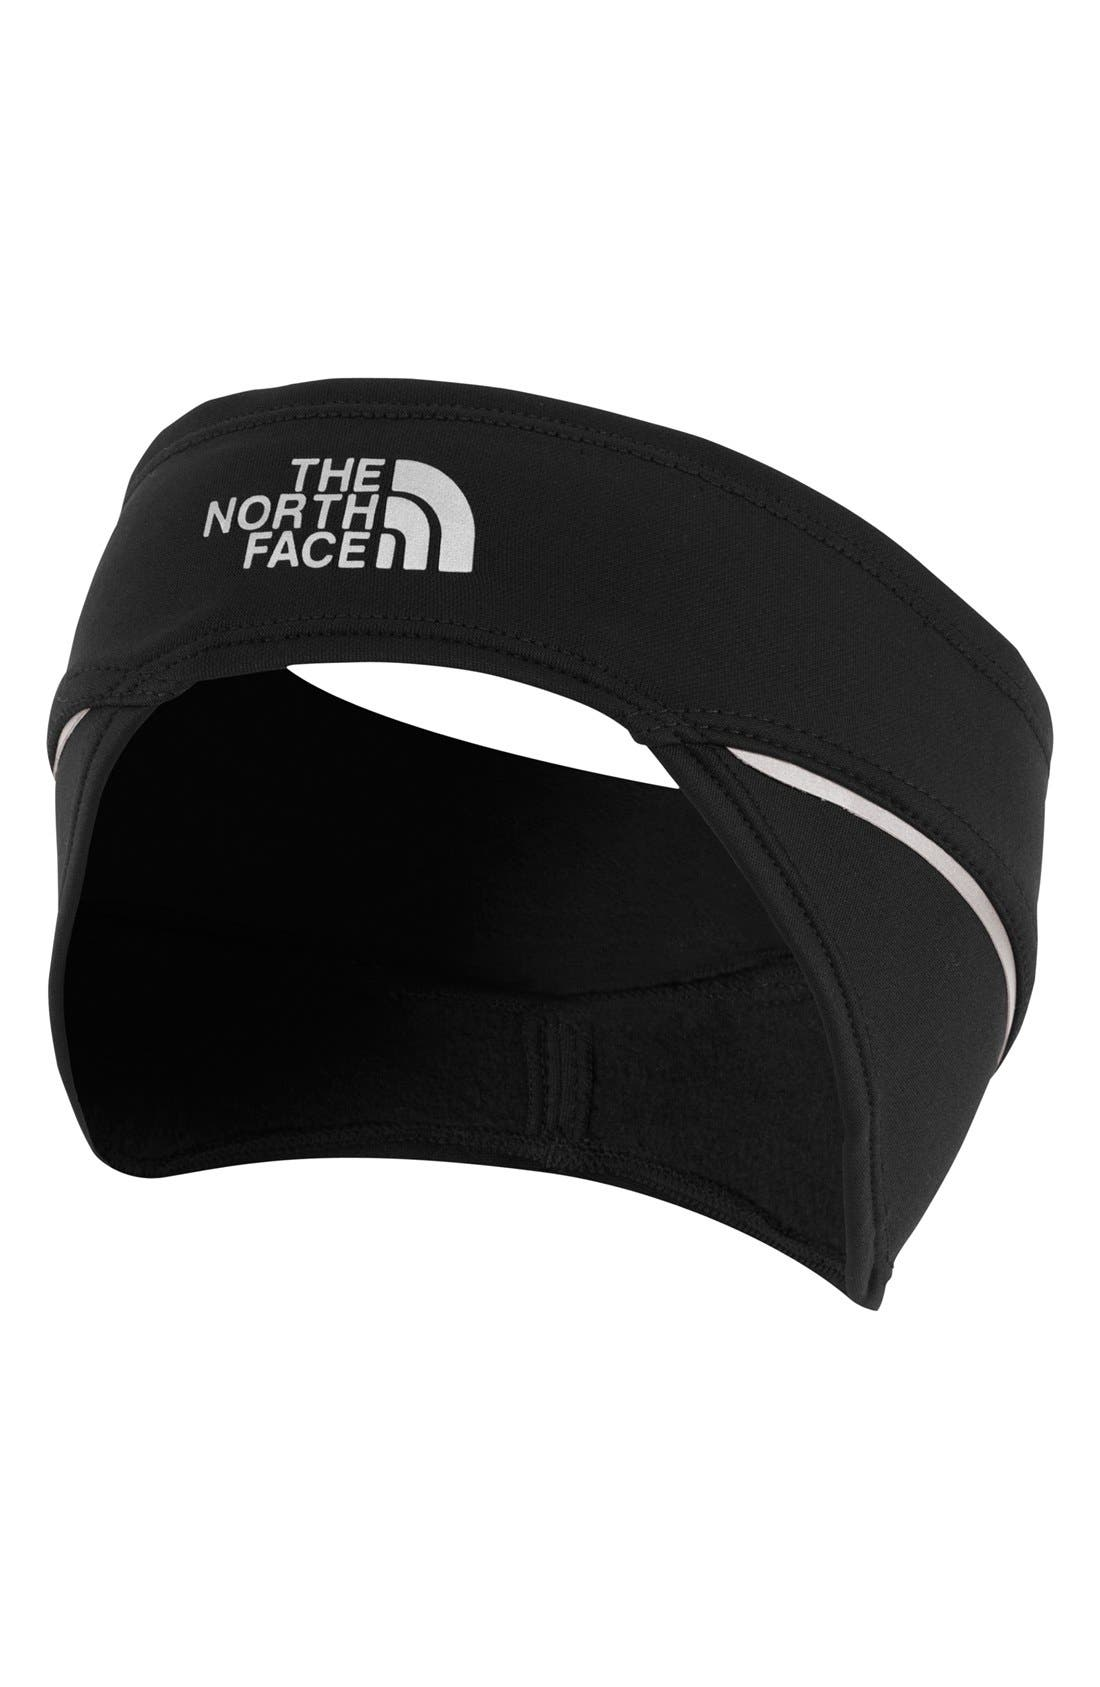 Main Image - The North Face 'Momentum' Ear Band